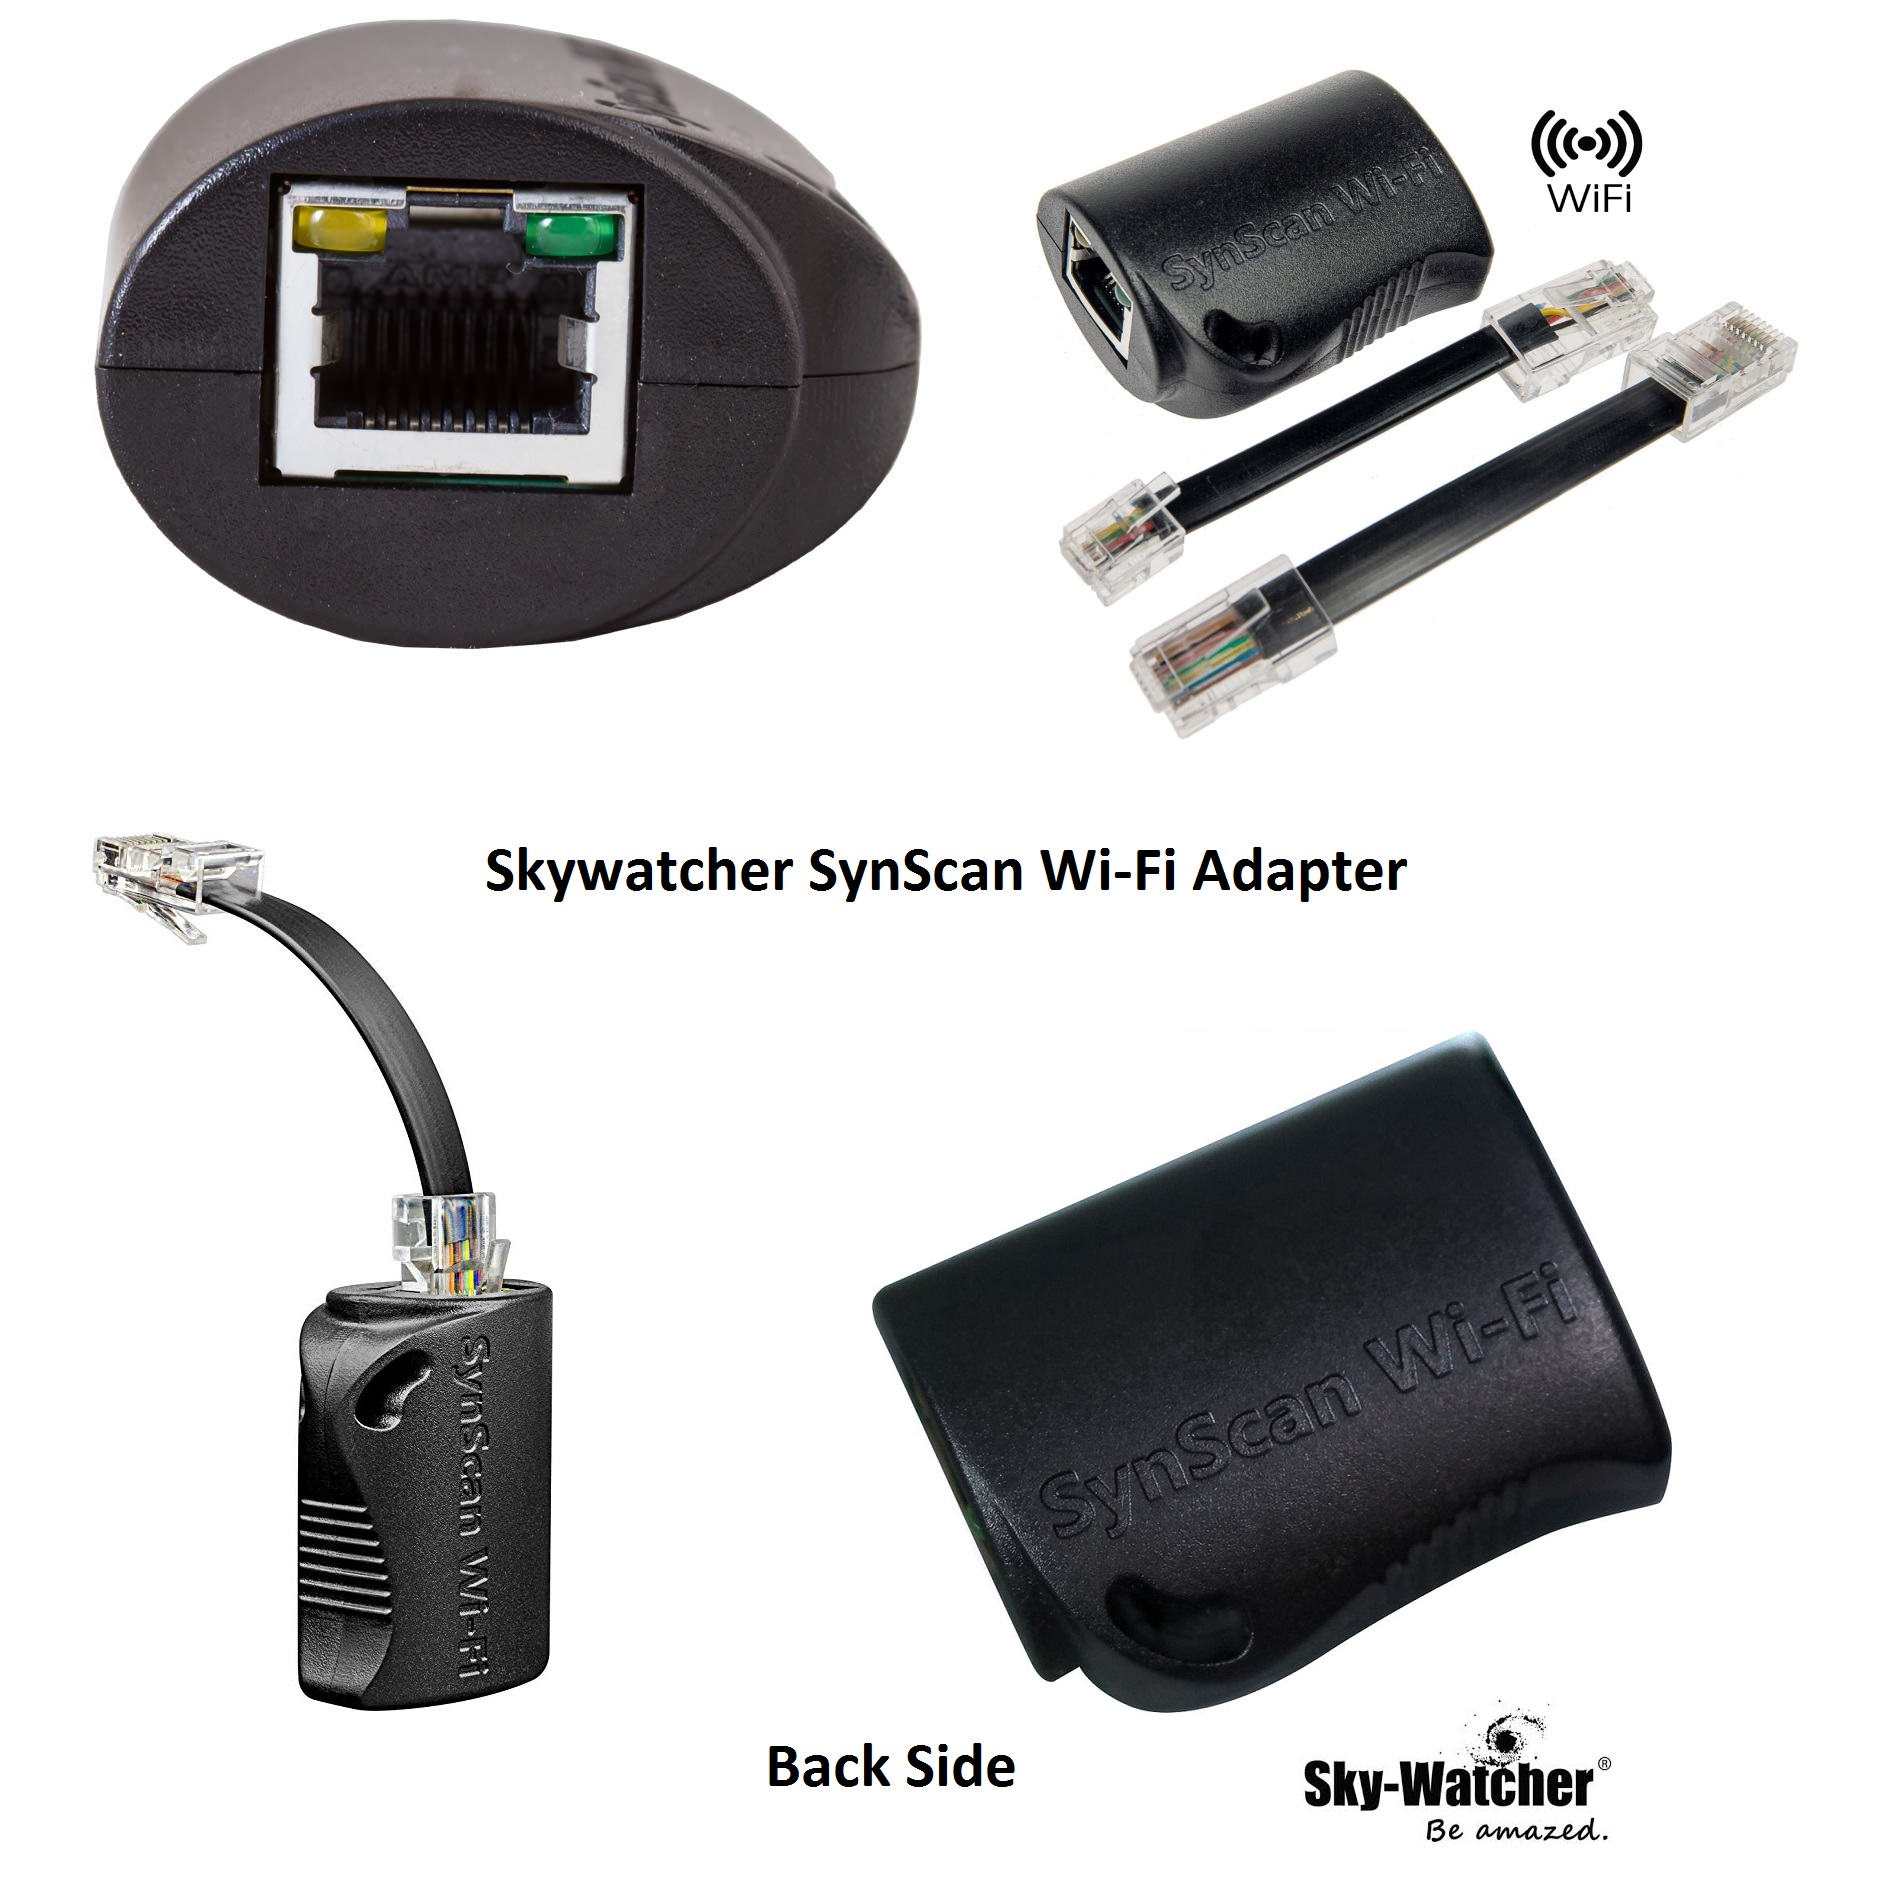 Skywatcher SynScan Wi-Fi Adapter